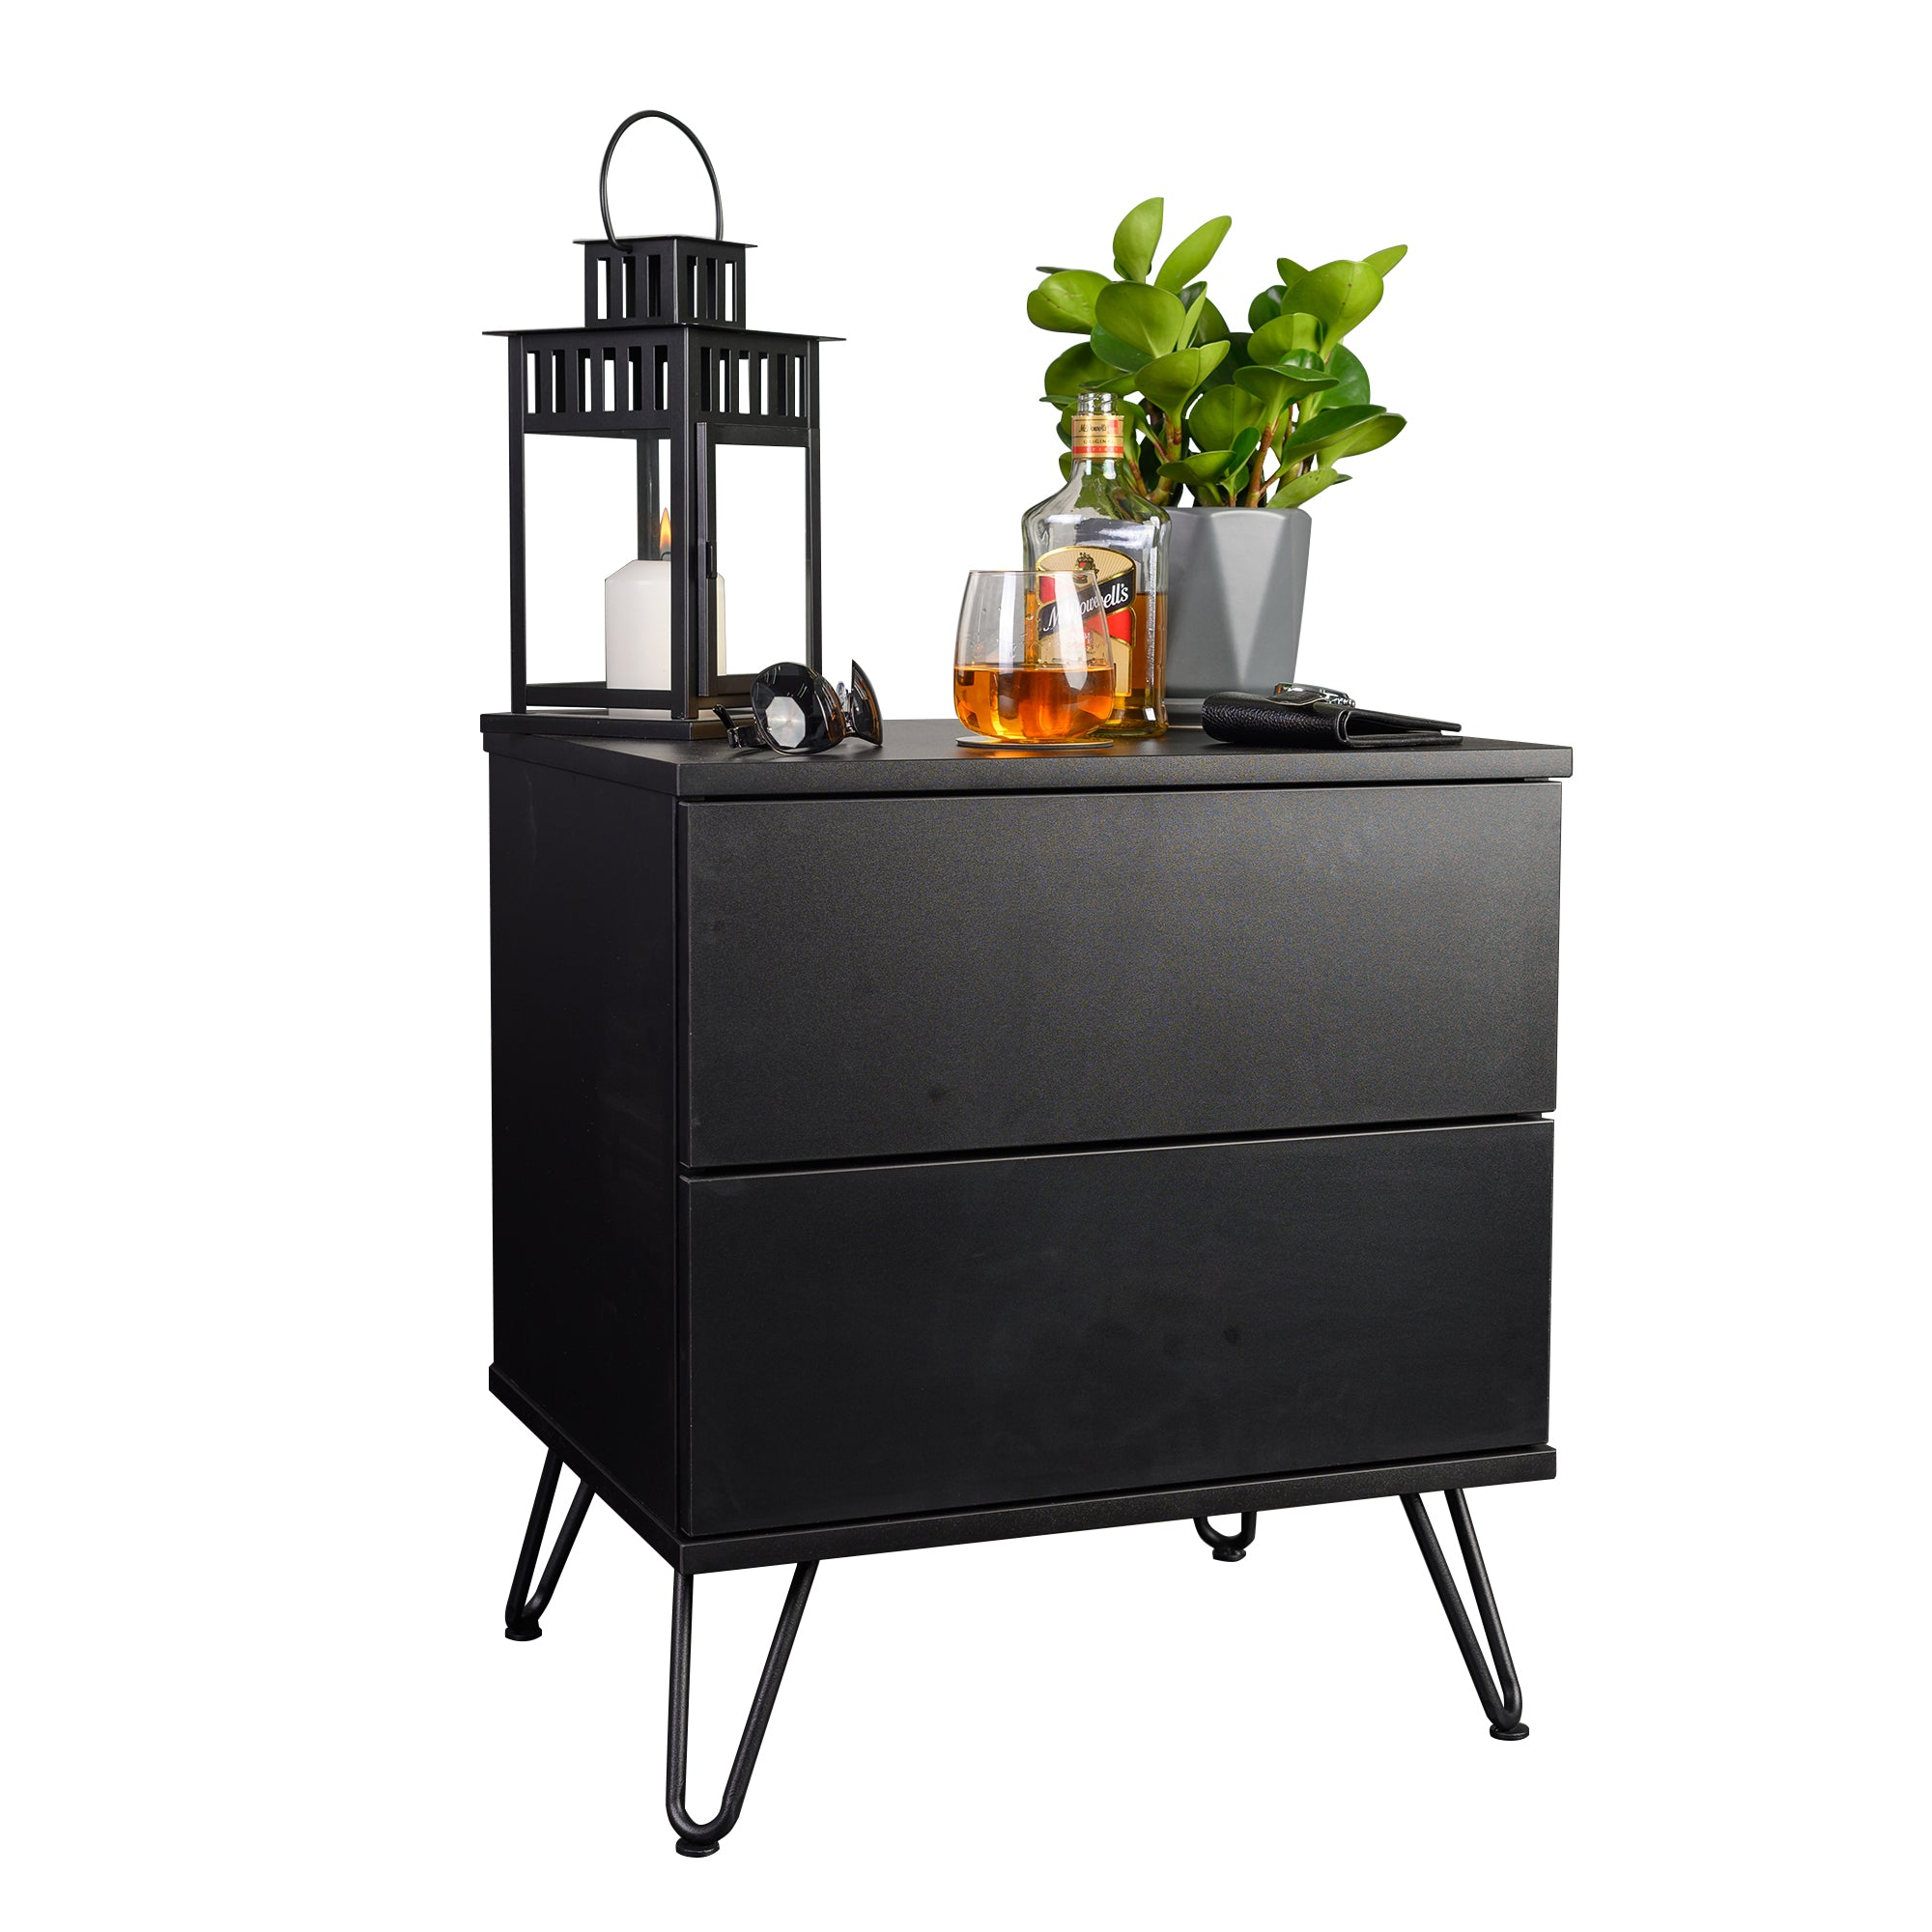 Corva bedside table, black